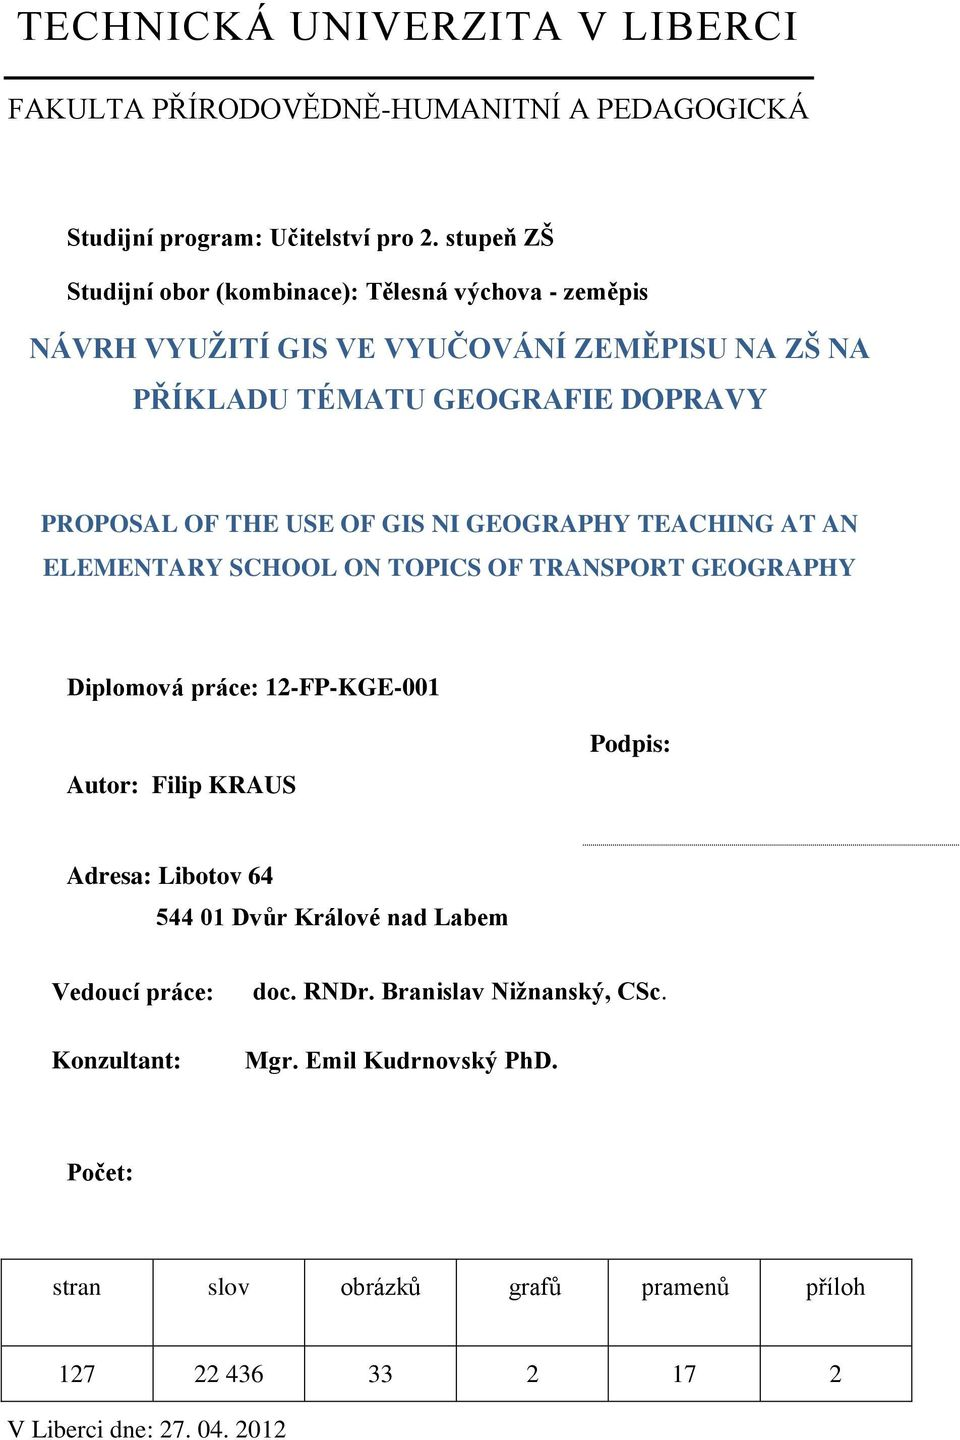 USE OF GIS NI GEOGRAPHY TEACHING AT AN ELEMENTARY SCHOOL ON TOPICS OF TRANSPORT GEOGRAPHY Diplomová práce: 12-FP-KGE-001 Autor: Filip KRAUS Podpis: Adresa: Libotov